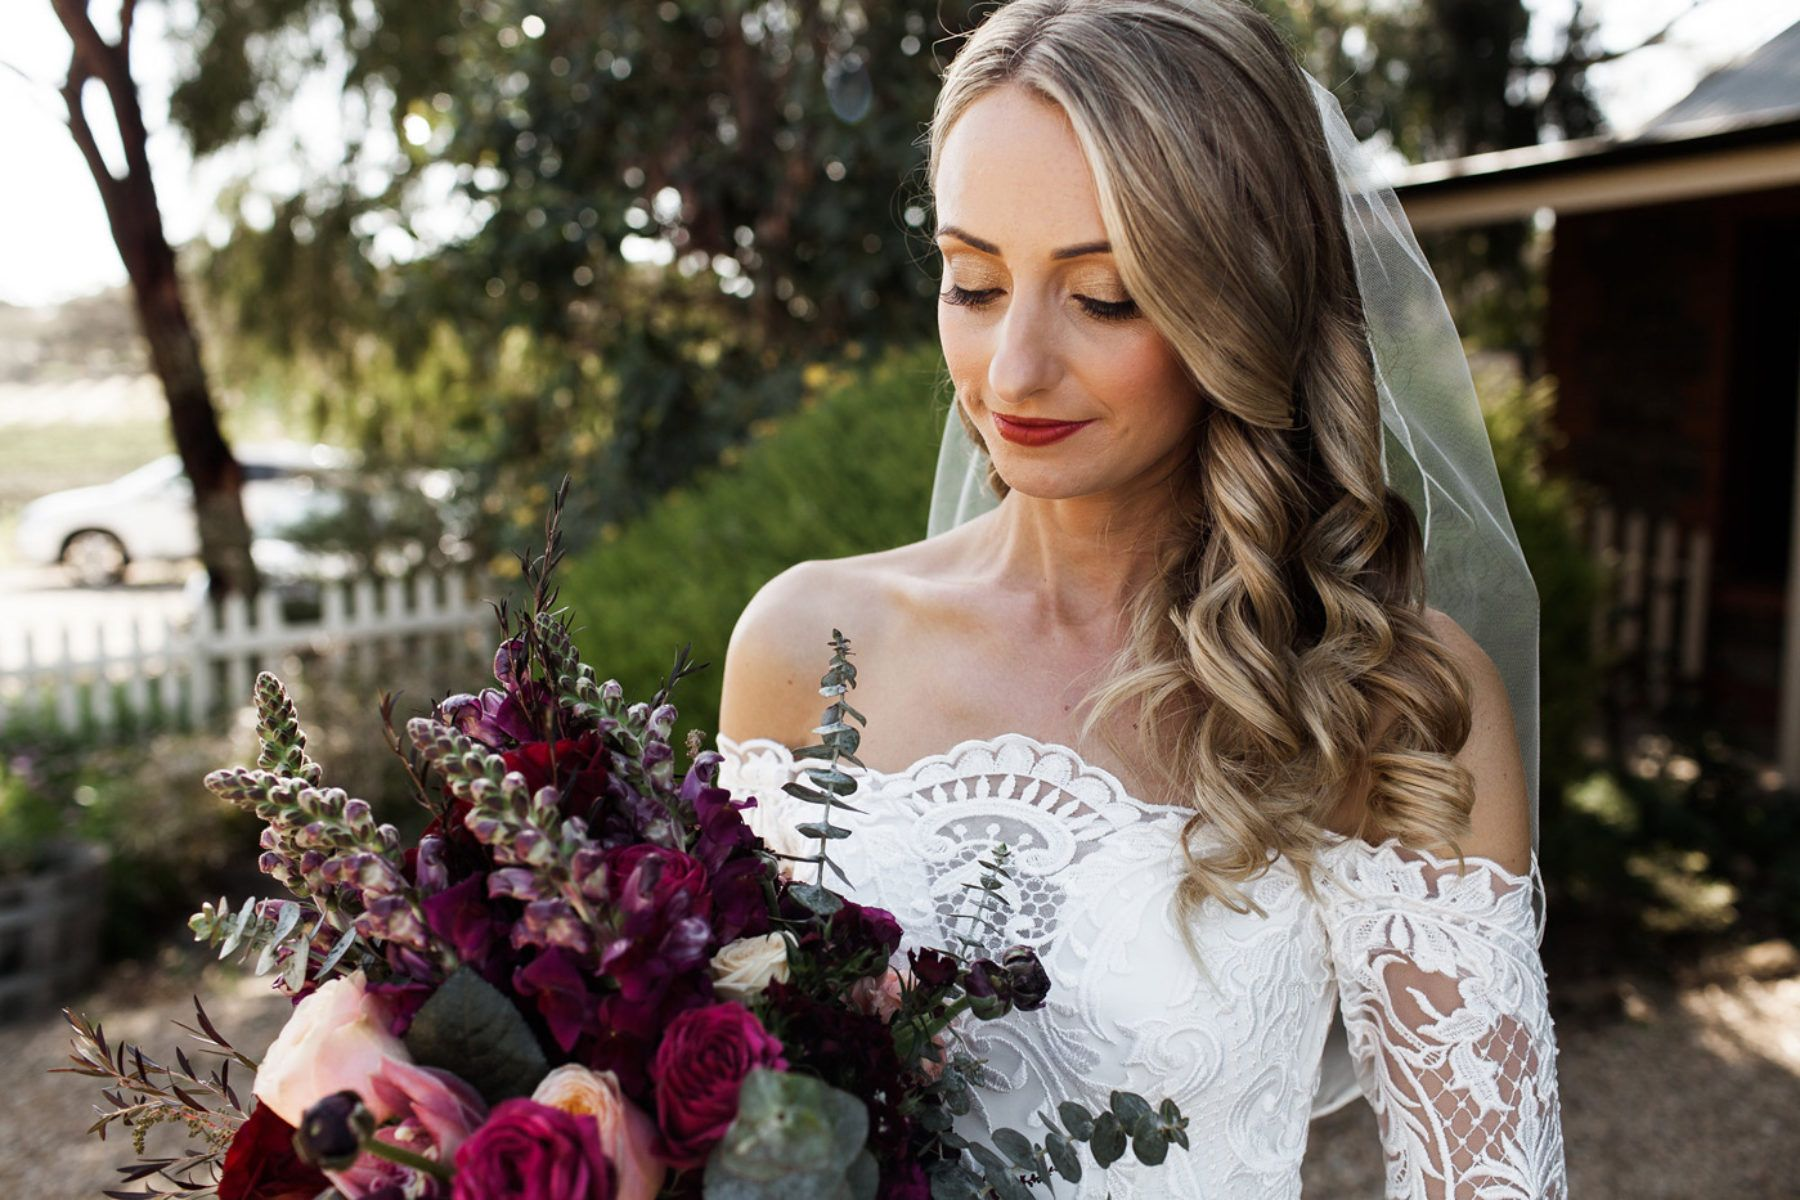 Thurley wedding dress  Leah u Henryus Barossa Valley Wedding  Recovery Brunch  Flowers